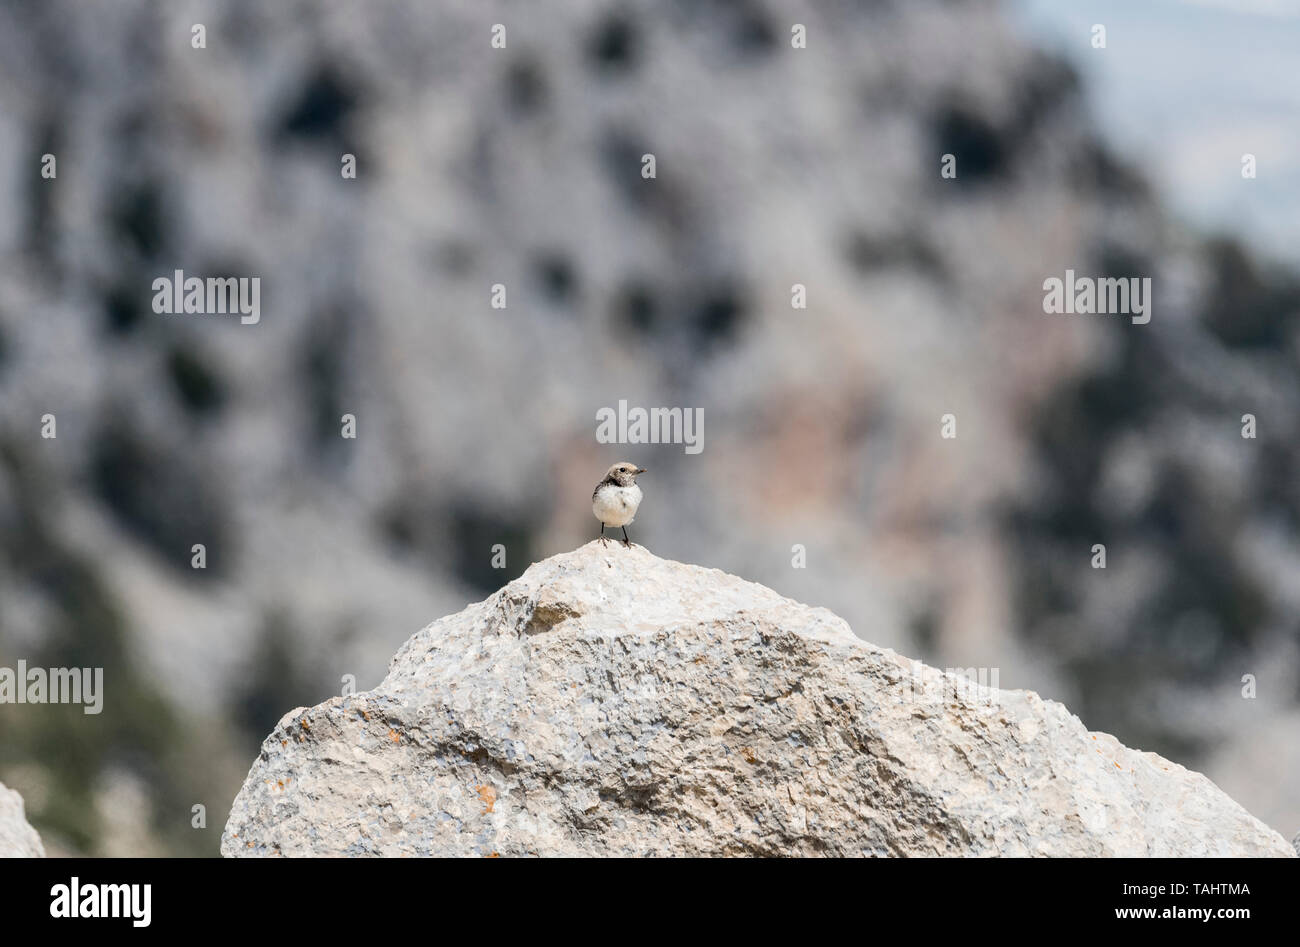 Finsch's Wheatear (Oenanthe finschii) perched on a rock - typical habitat Stock Photo